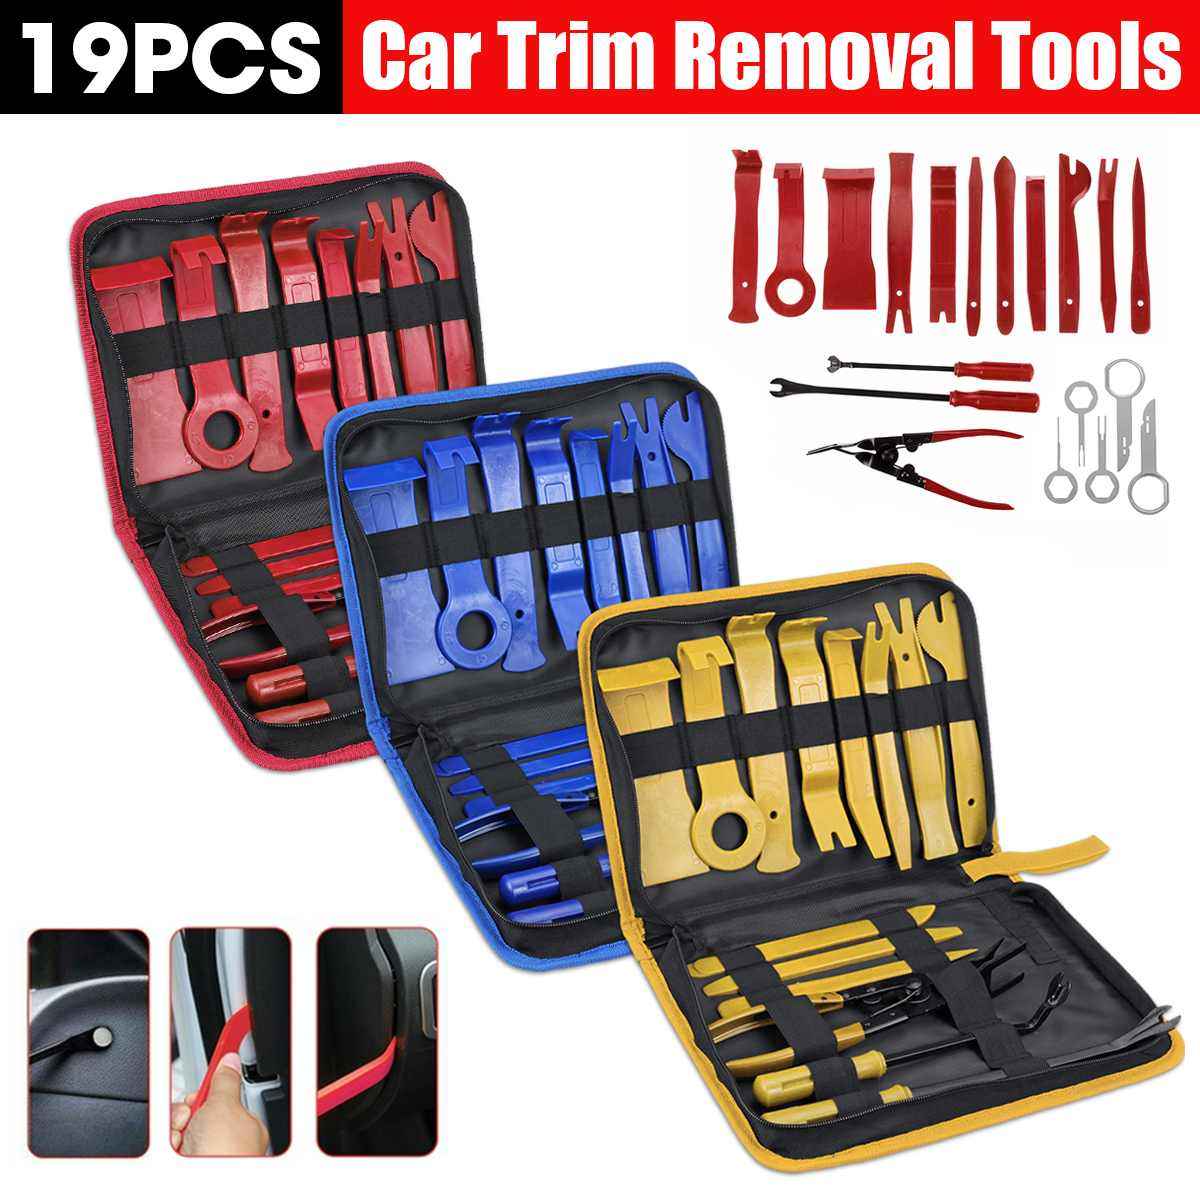 19pcs Car Disassembly Tools DVD Stereo Refit Kit Interior Trim Panel Dashboard Installation Removal Repair Tools Red/Blue/Yellow